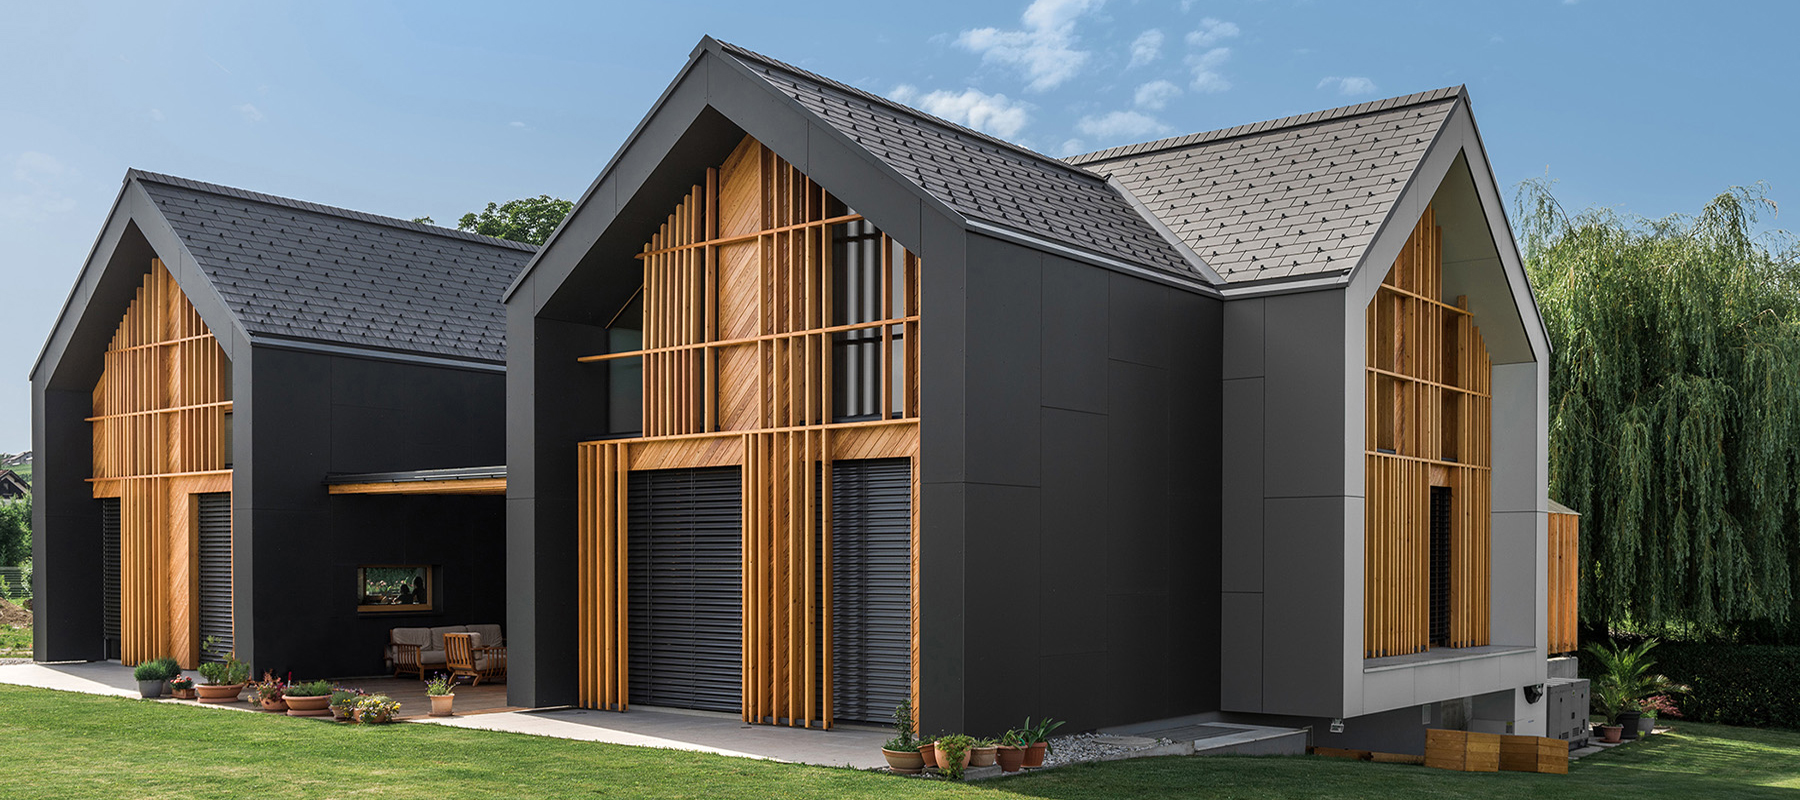 All black house design of three gabled volumes digsdigs for Mansion architecture designs